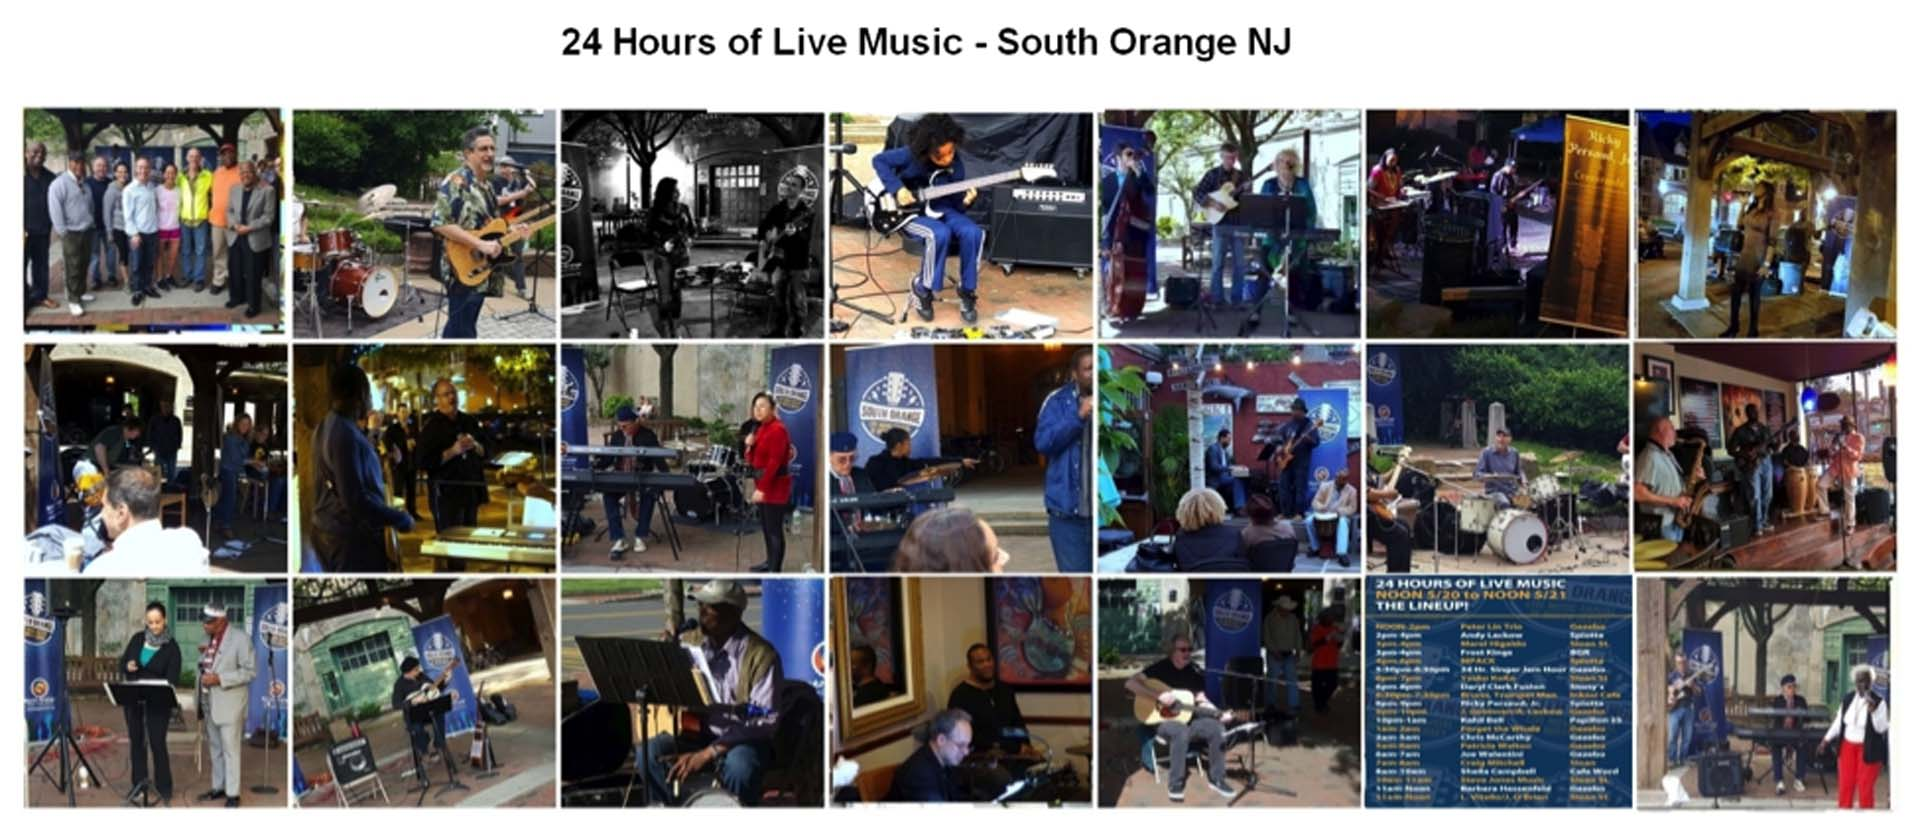 24 Hours of Live Music South Orange NJ.jpg